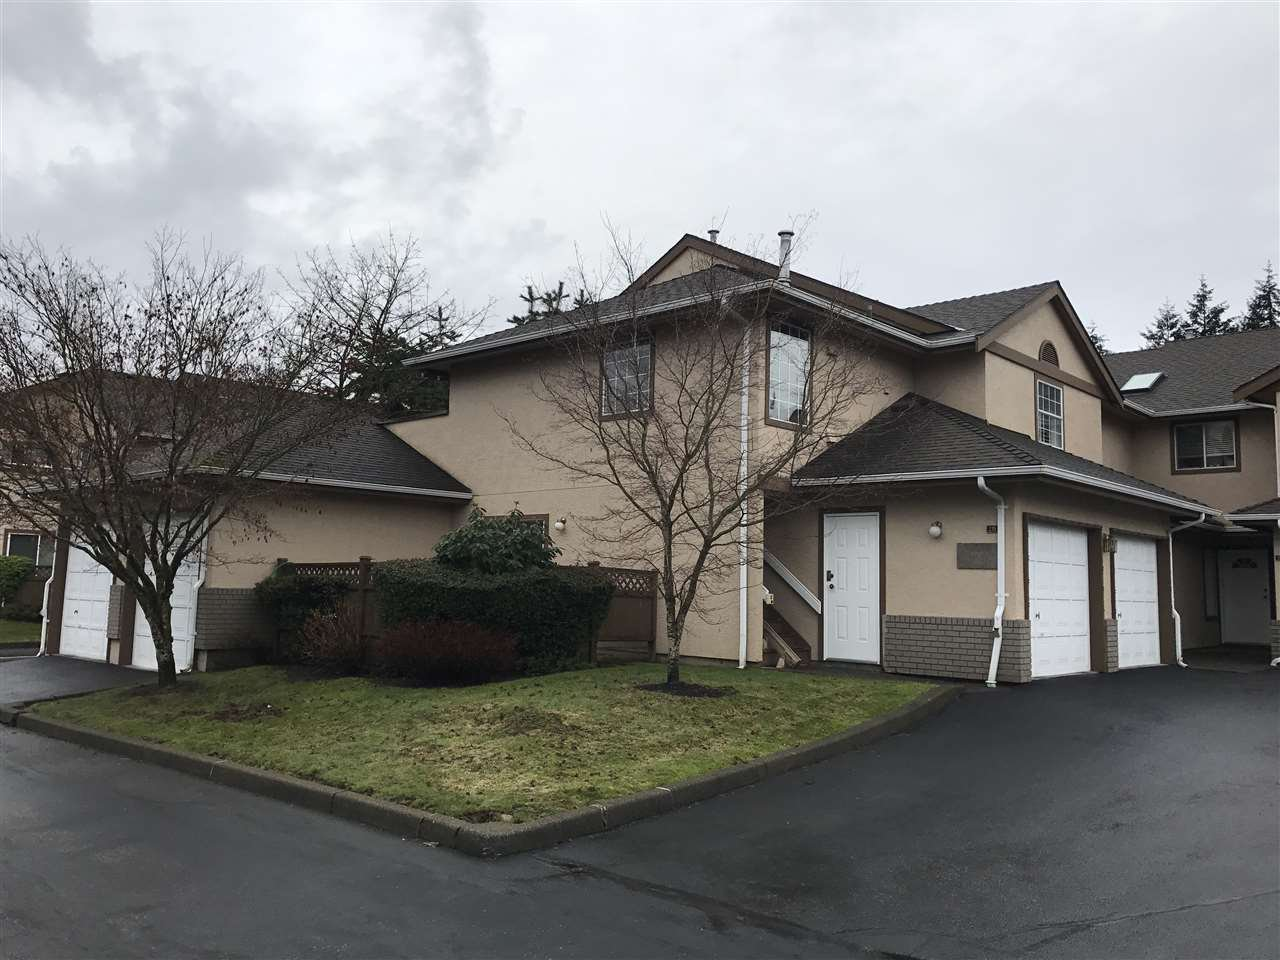 """Main Photo: 139 14861 98 Avenue in Surrey: Guildford Townhouse for sale in """"The Mansions"""" (North Surrey)  : MLS®# R2146574"""